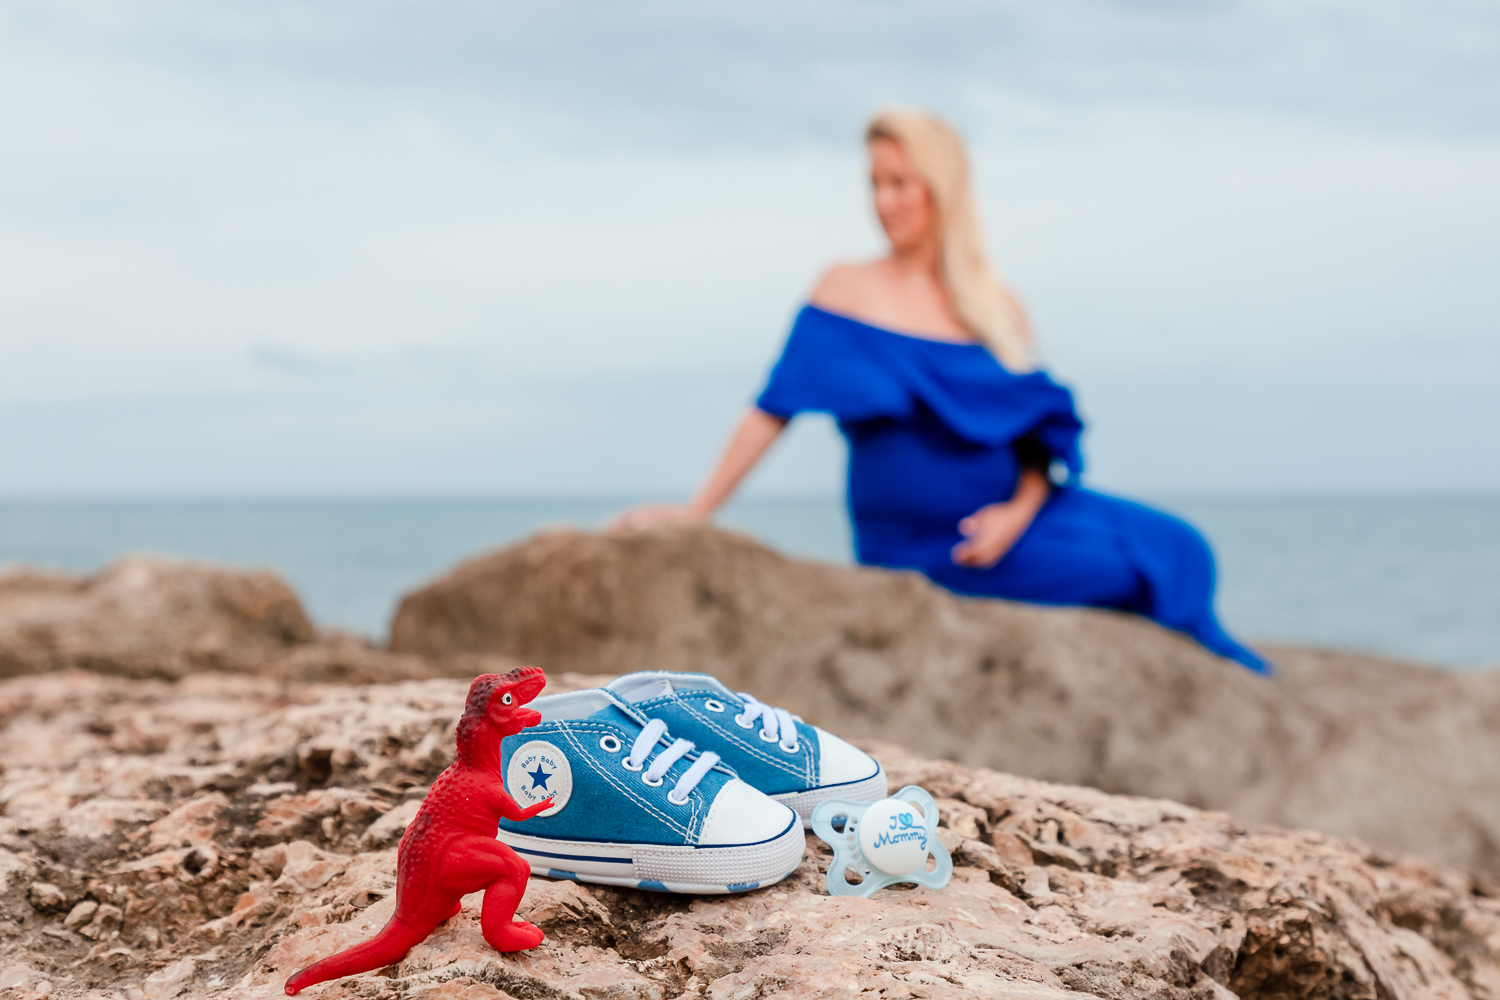 oahu maternity sunset portrait baby shoes beach ocean